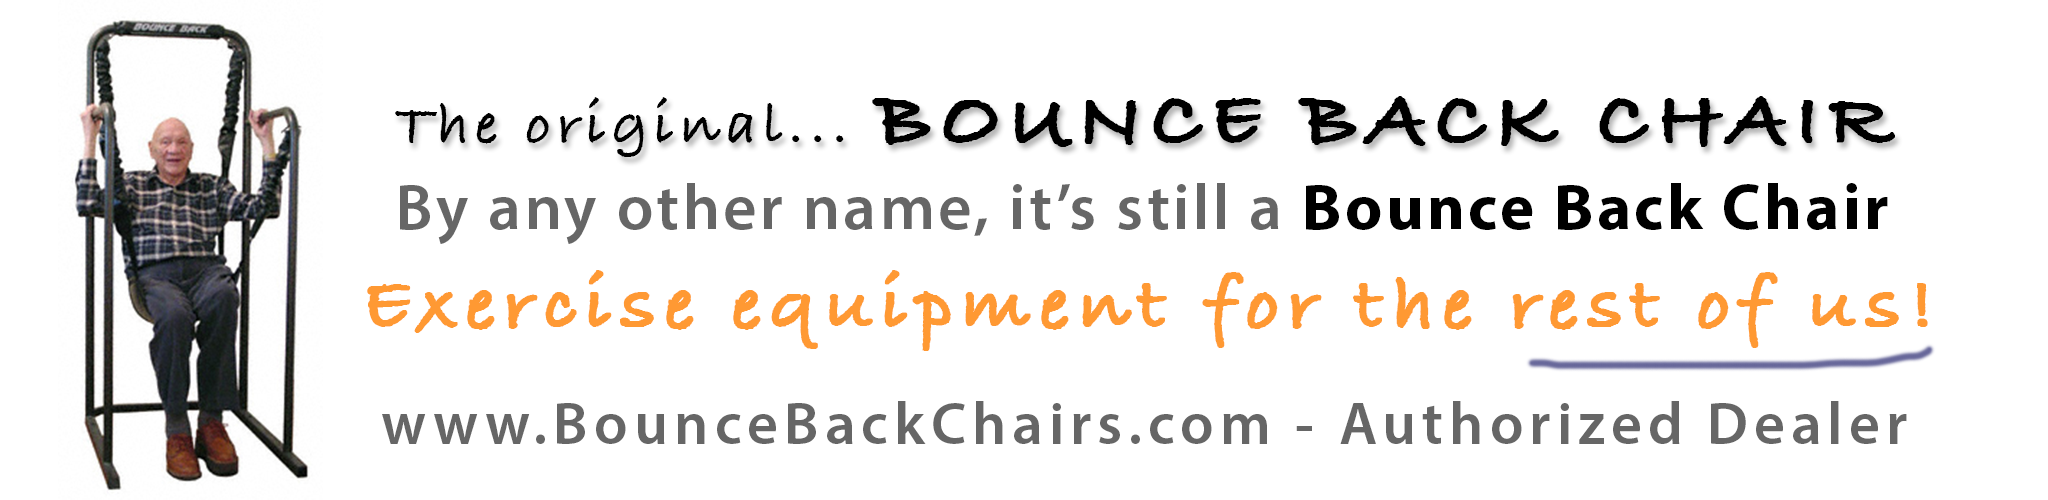 Bounce Back Chairs banner